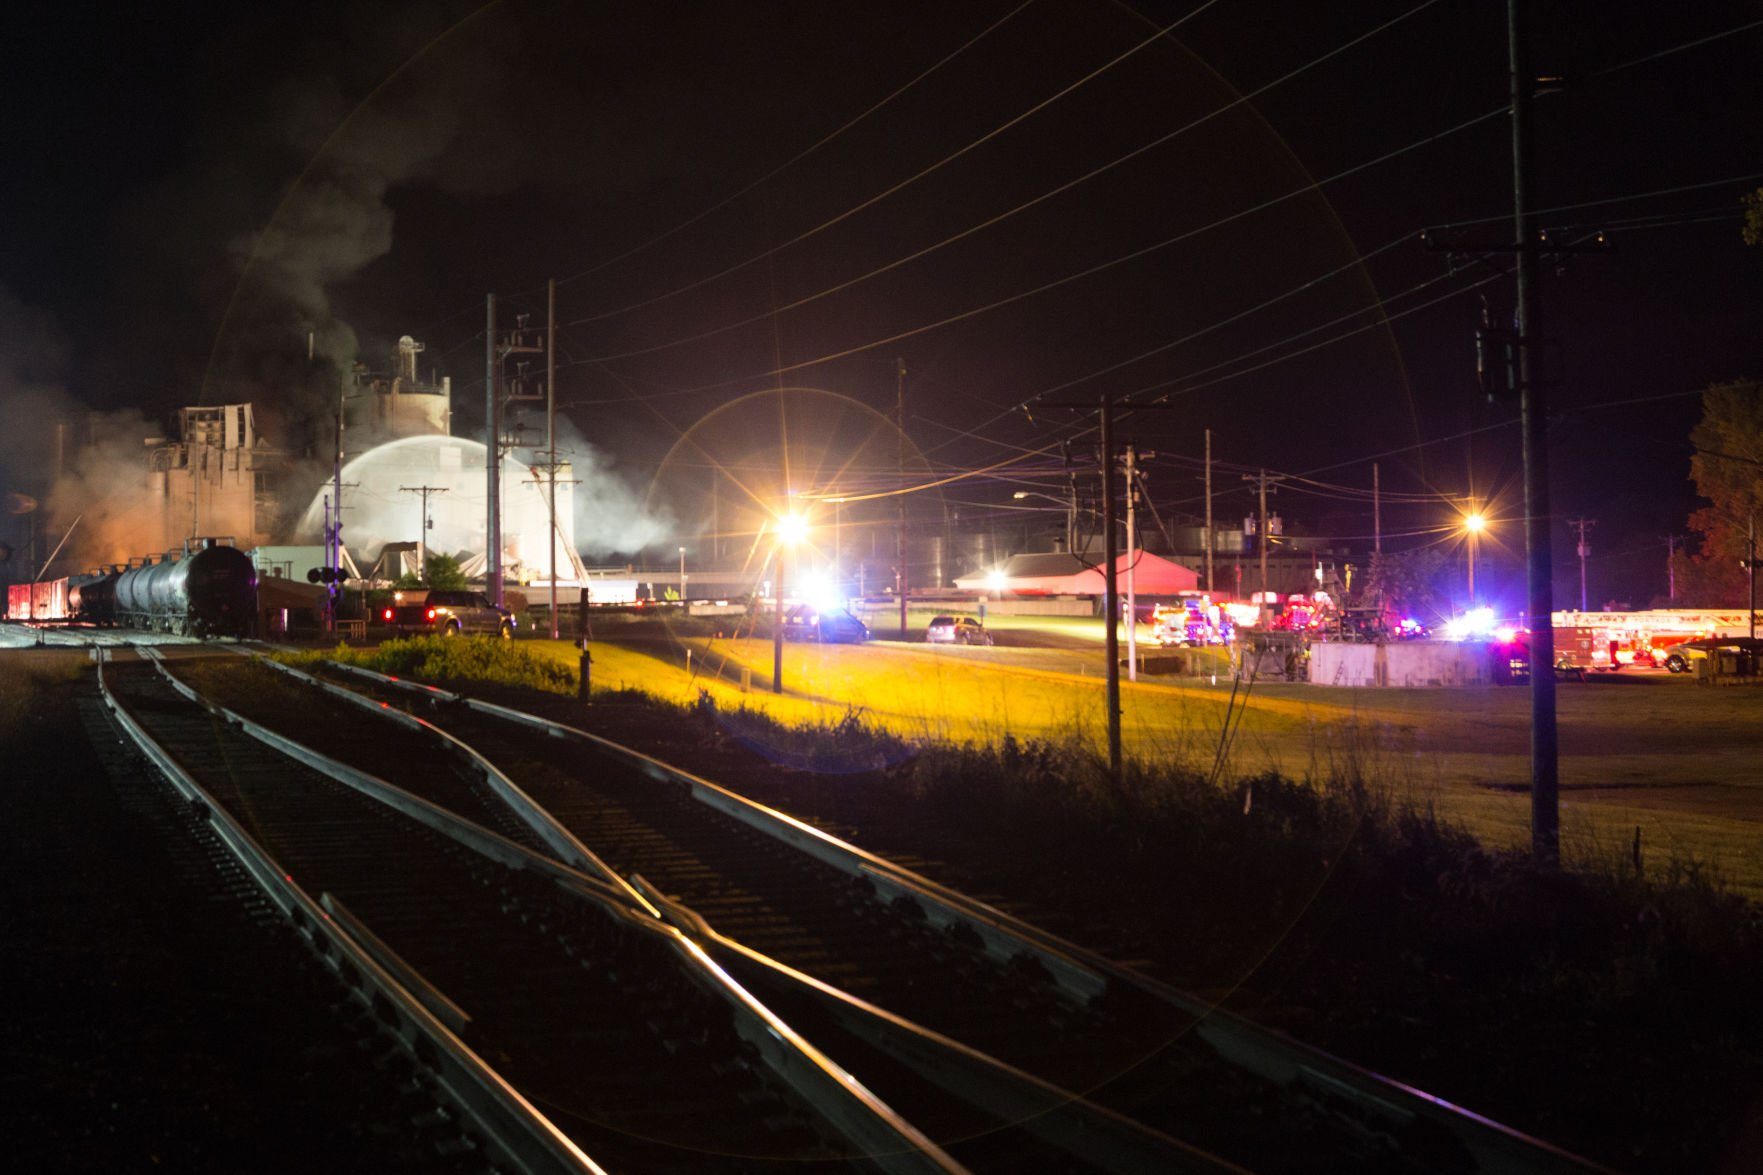 Injuries reported in milling plant explosion in Wisconsin